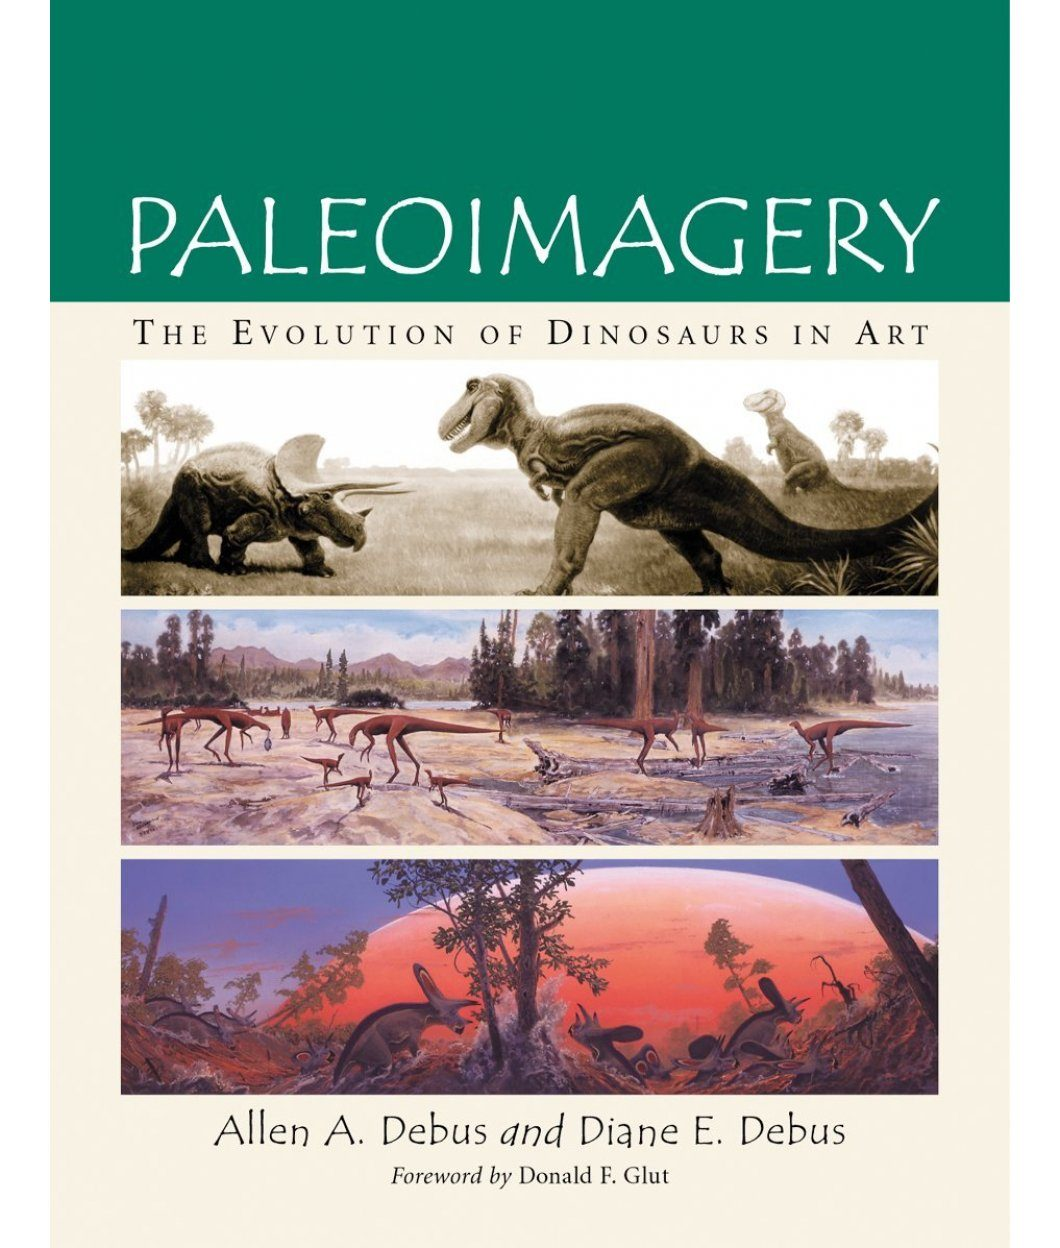 Paleoimagery: The Evolution of Dinosaurs in Art